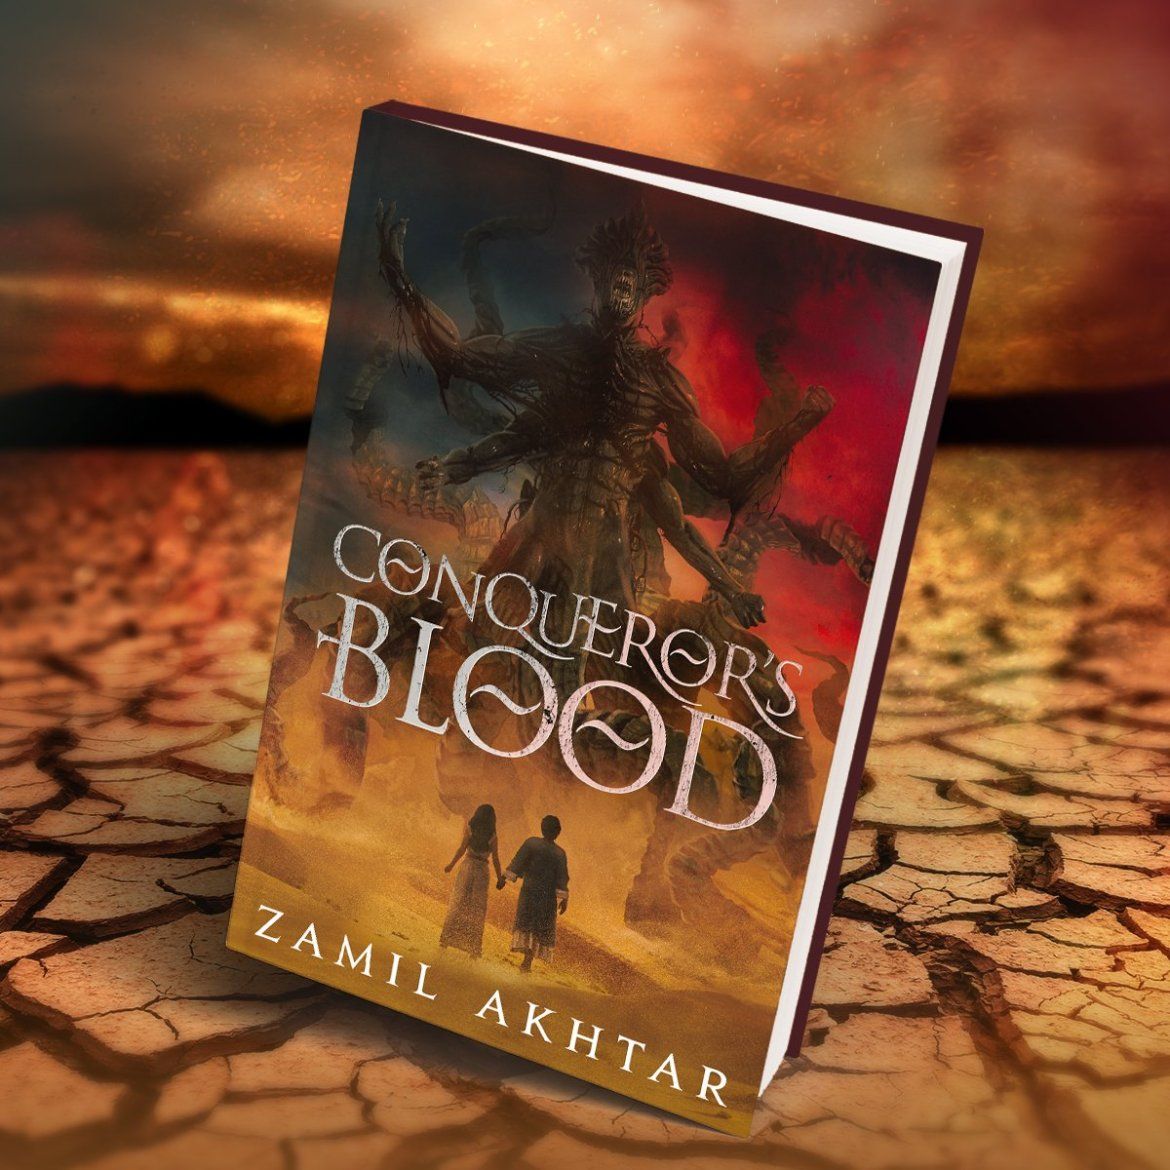 Conqueror's Blood by Zamil Akhtar